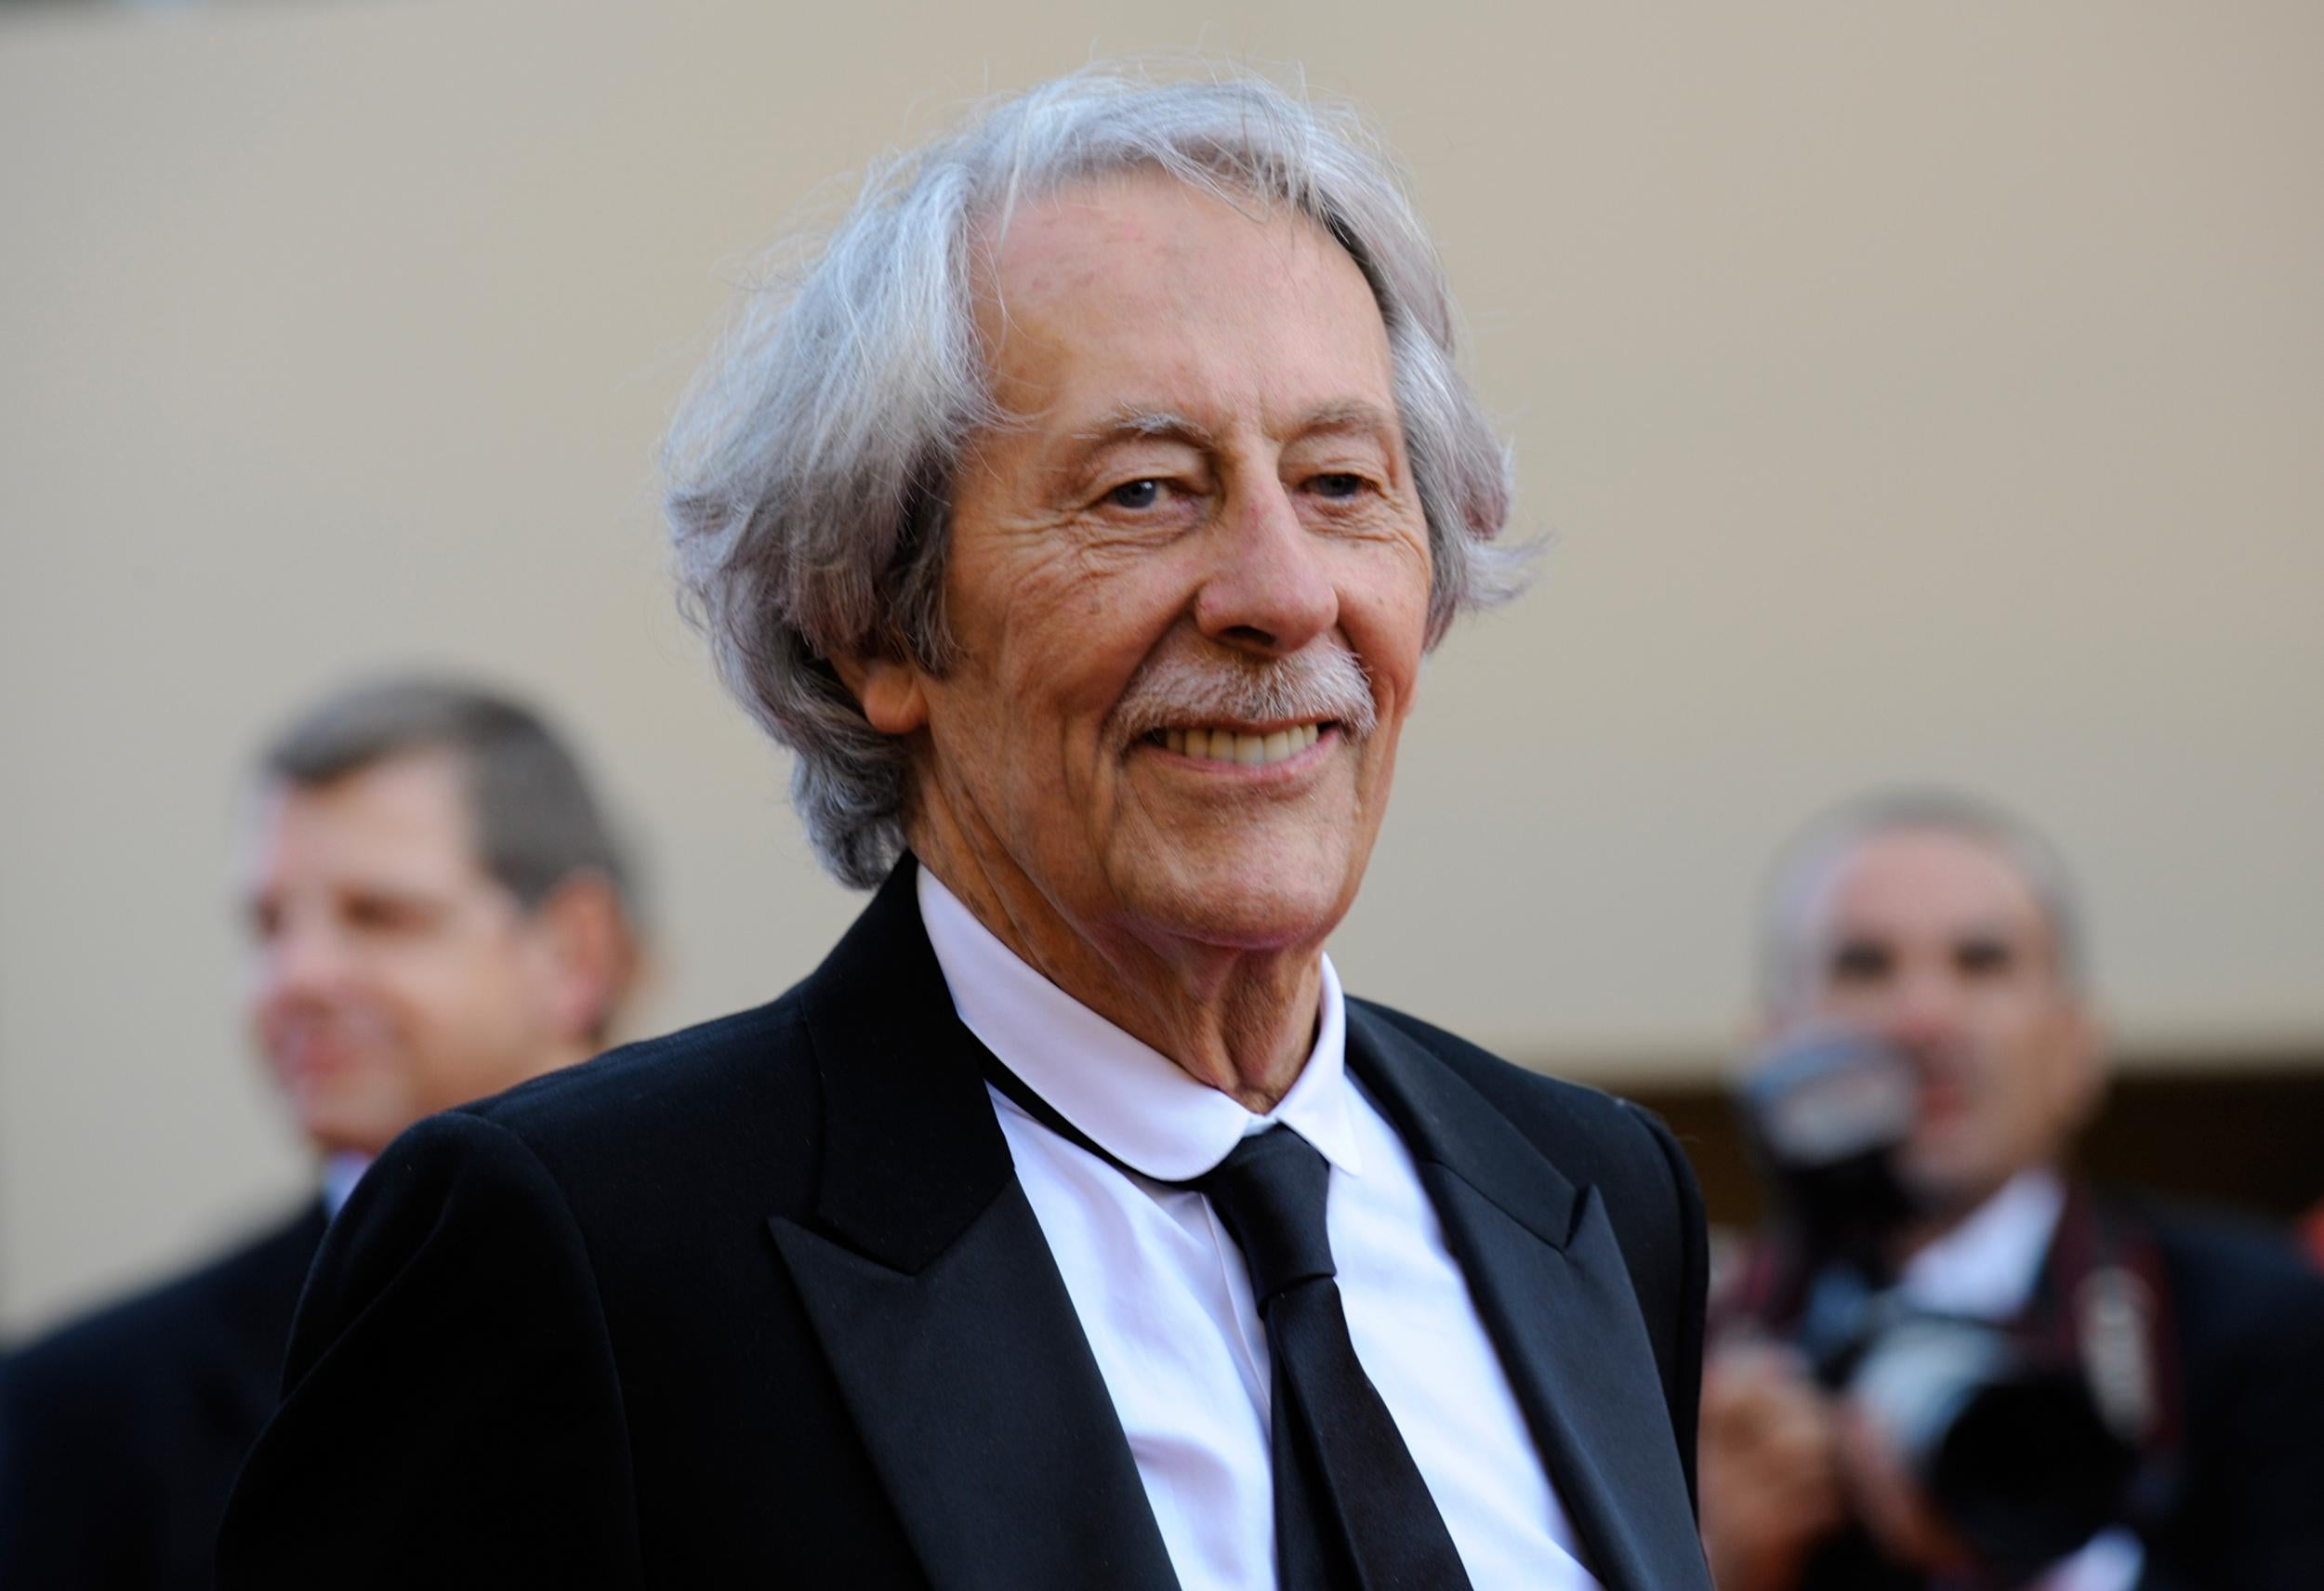 French acting legend Jean Rochefort has died